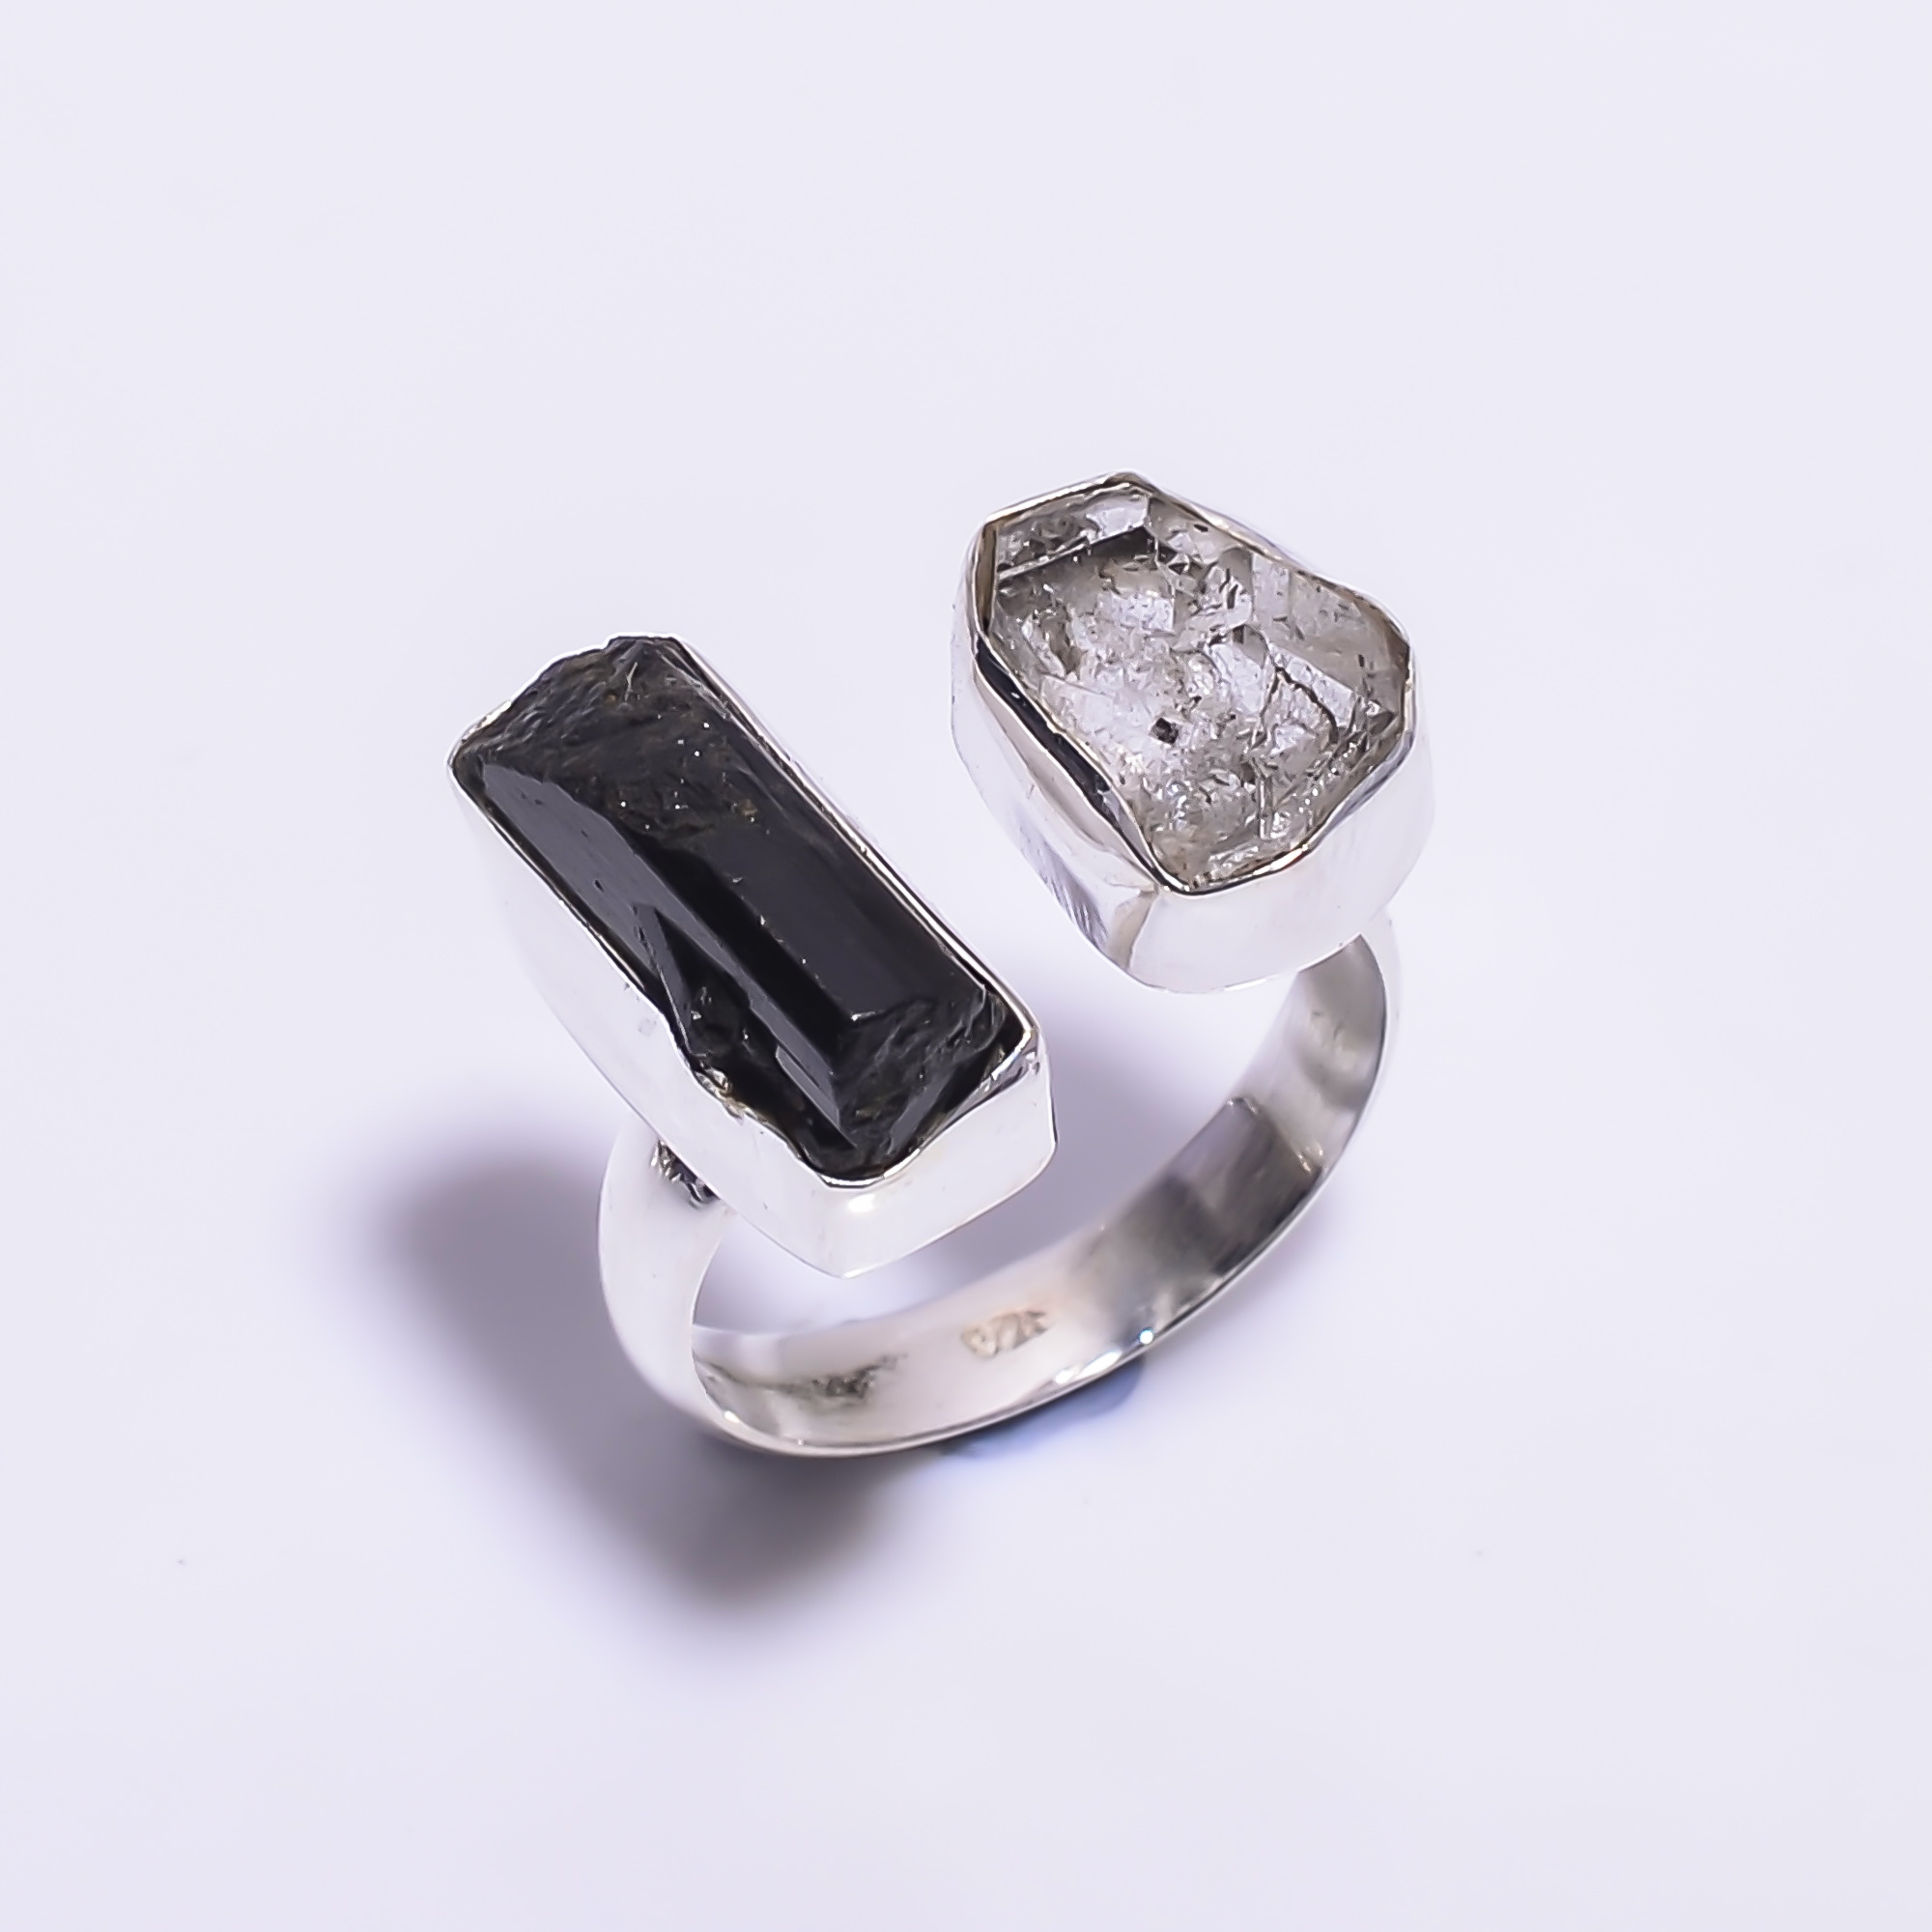 Natural Black Tourmaline Herkimer Diamond 925 Sterling Silver Ring Size US 5.5 Adjustable